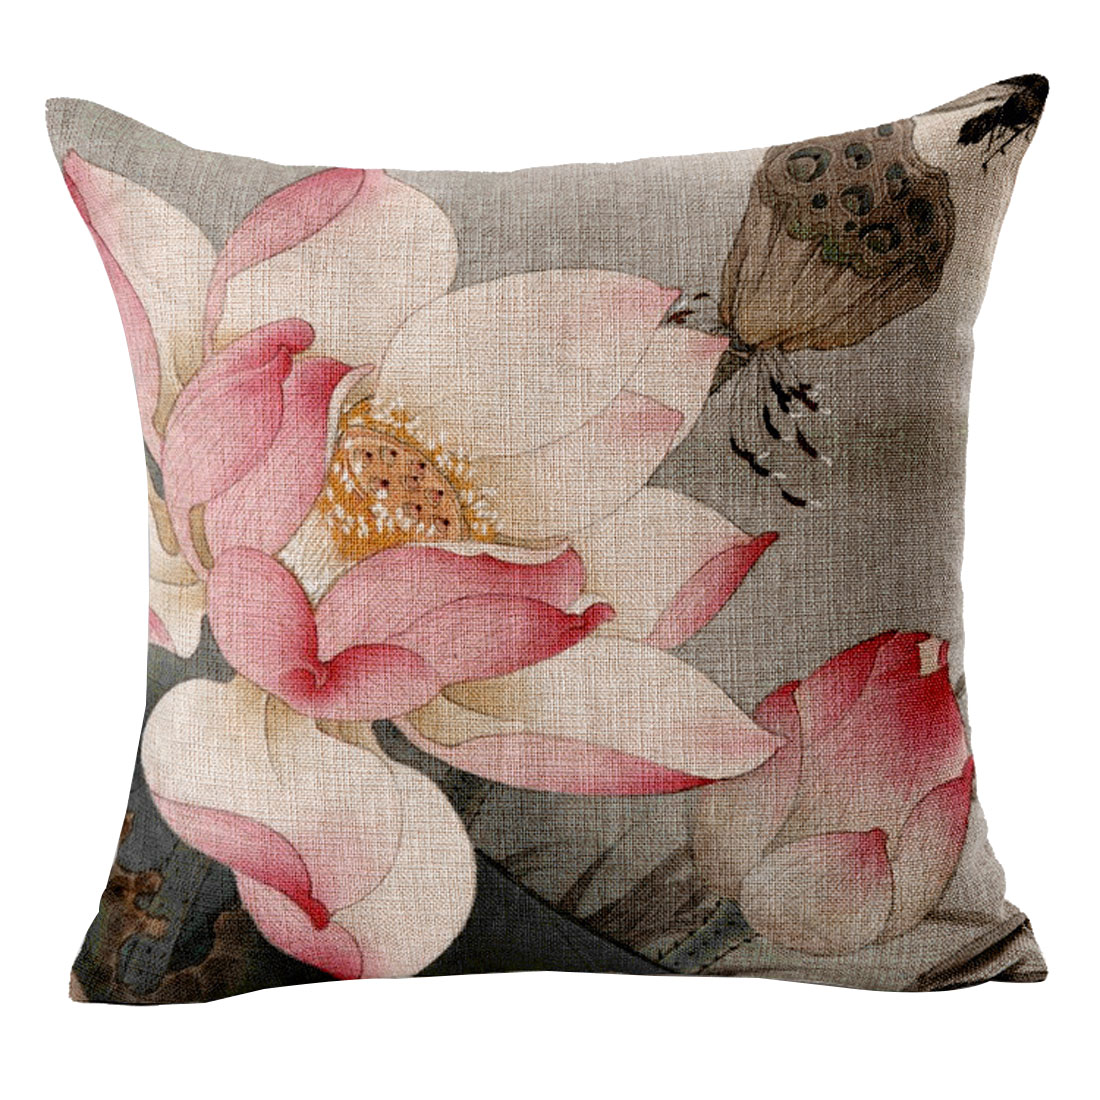 Sofa Car Seat Cotton Linen Lotus Pattern Chinoiserie Waist Throw Cushion Pillow Cover